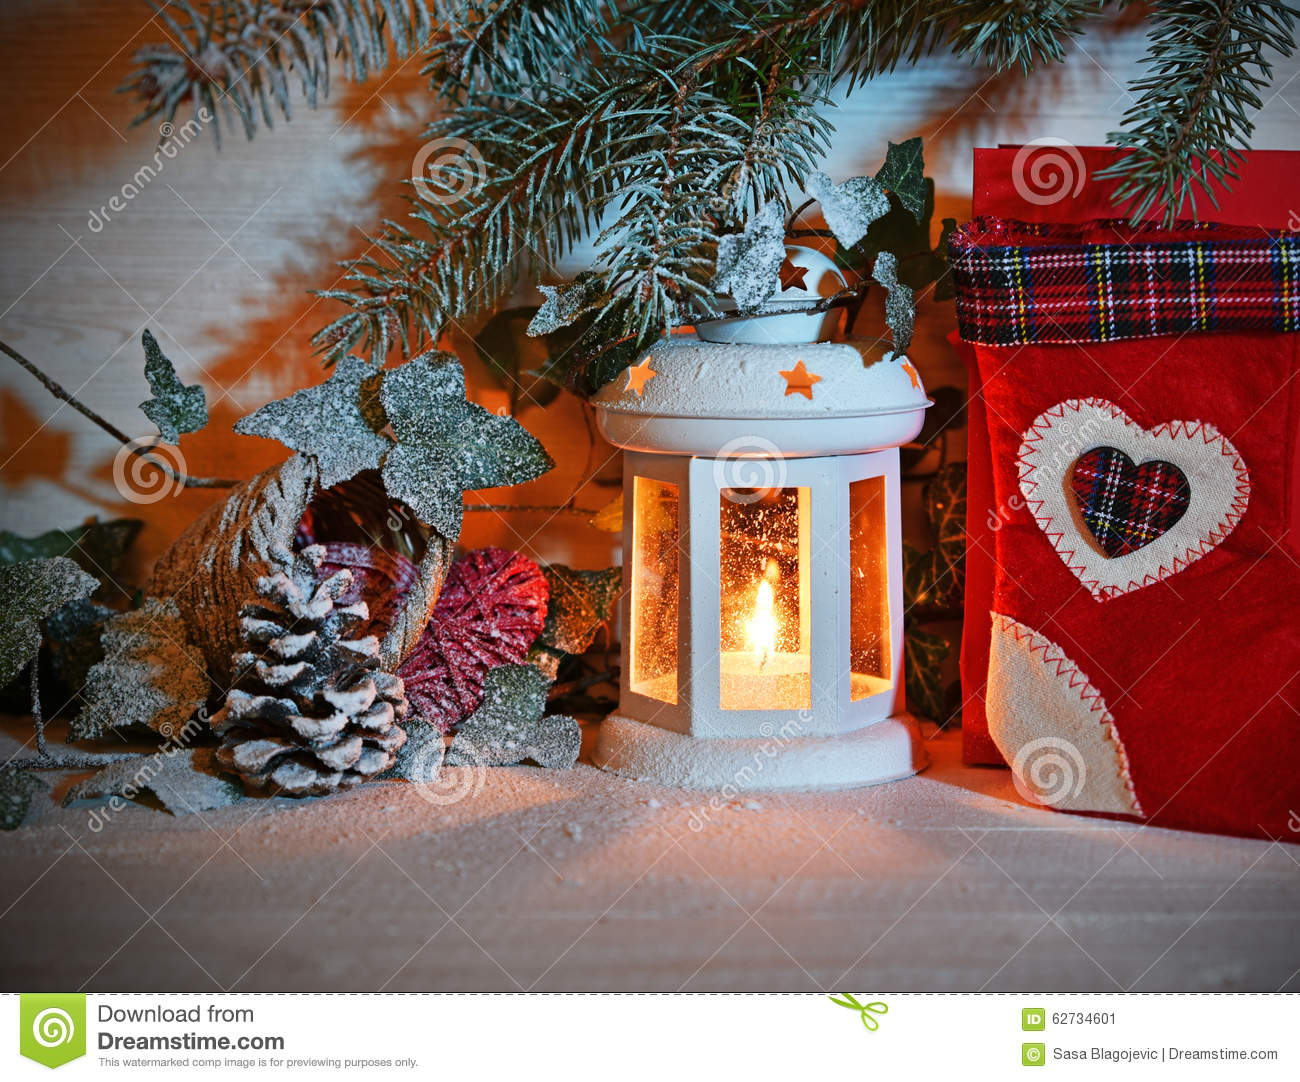 Christmas lantern in night on snow stock image image of for Images of lanterns decorated for christmas